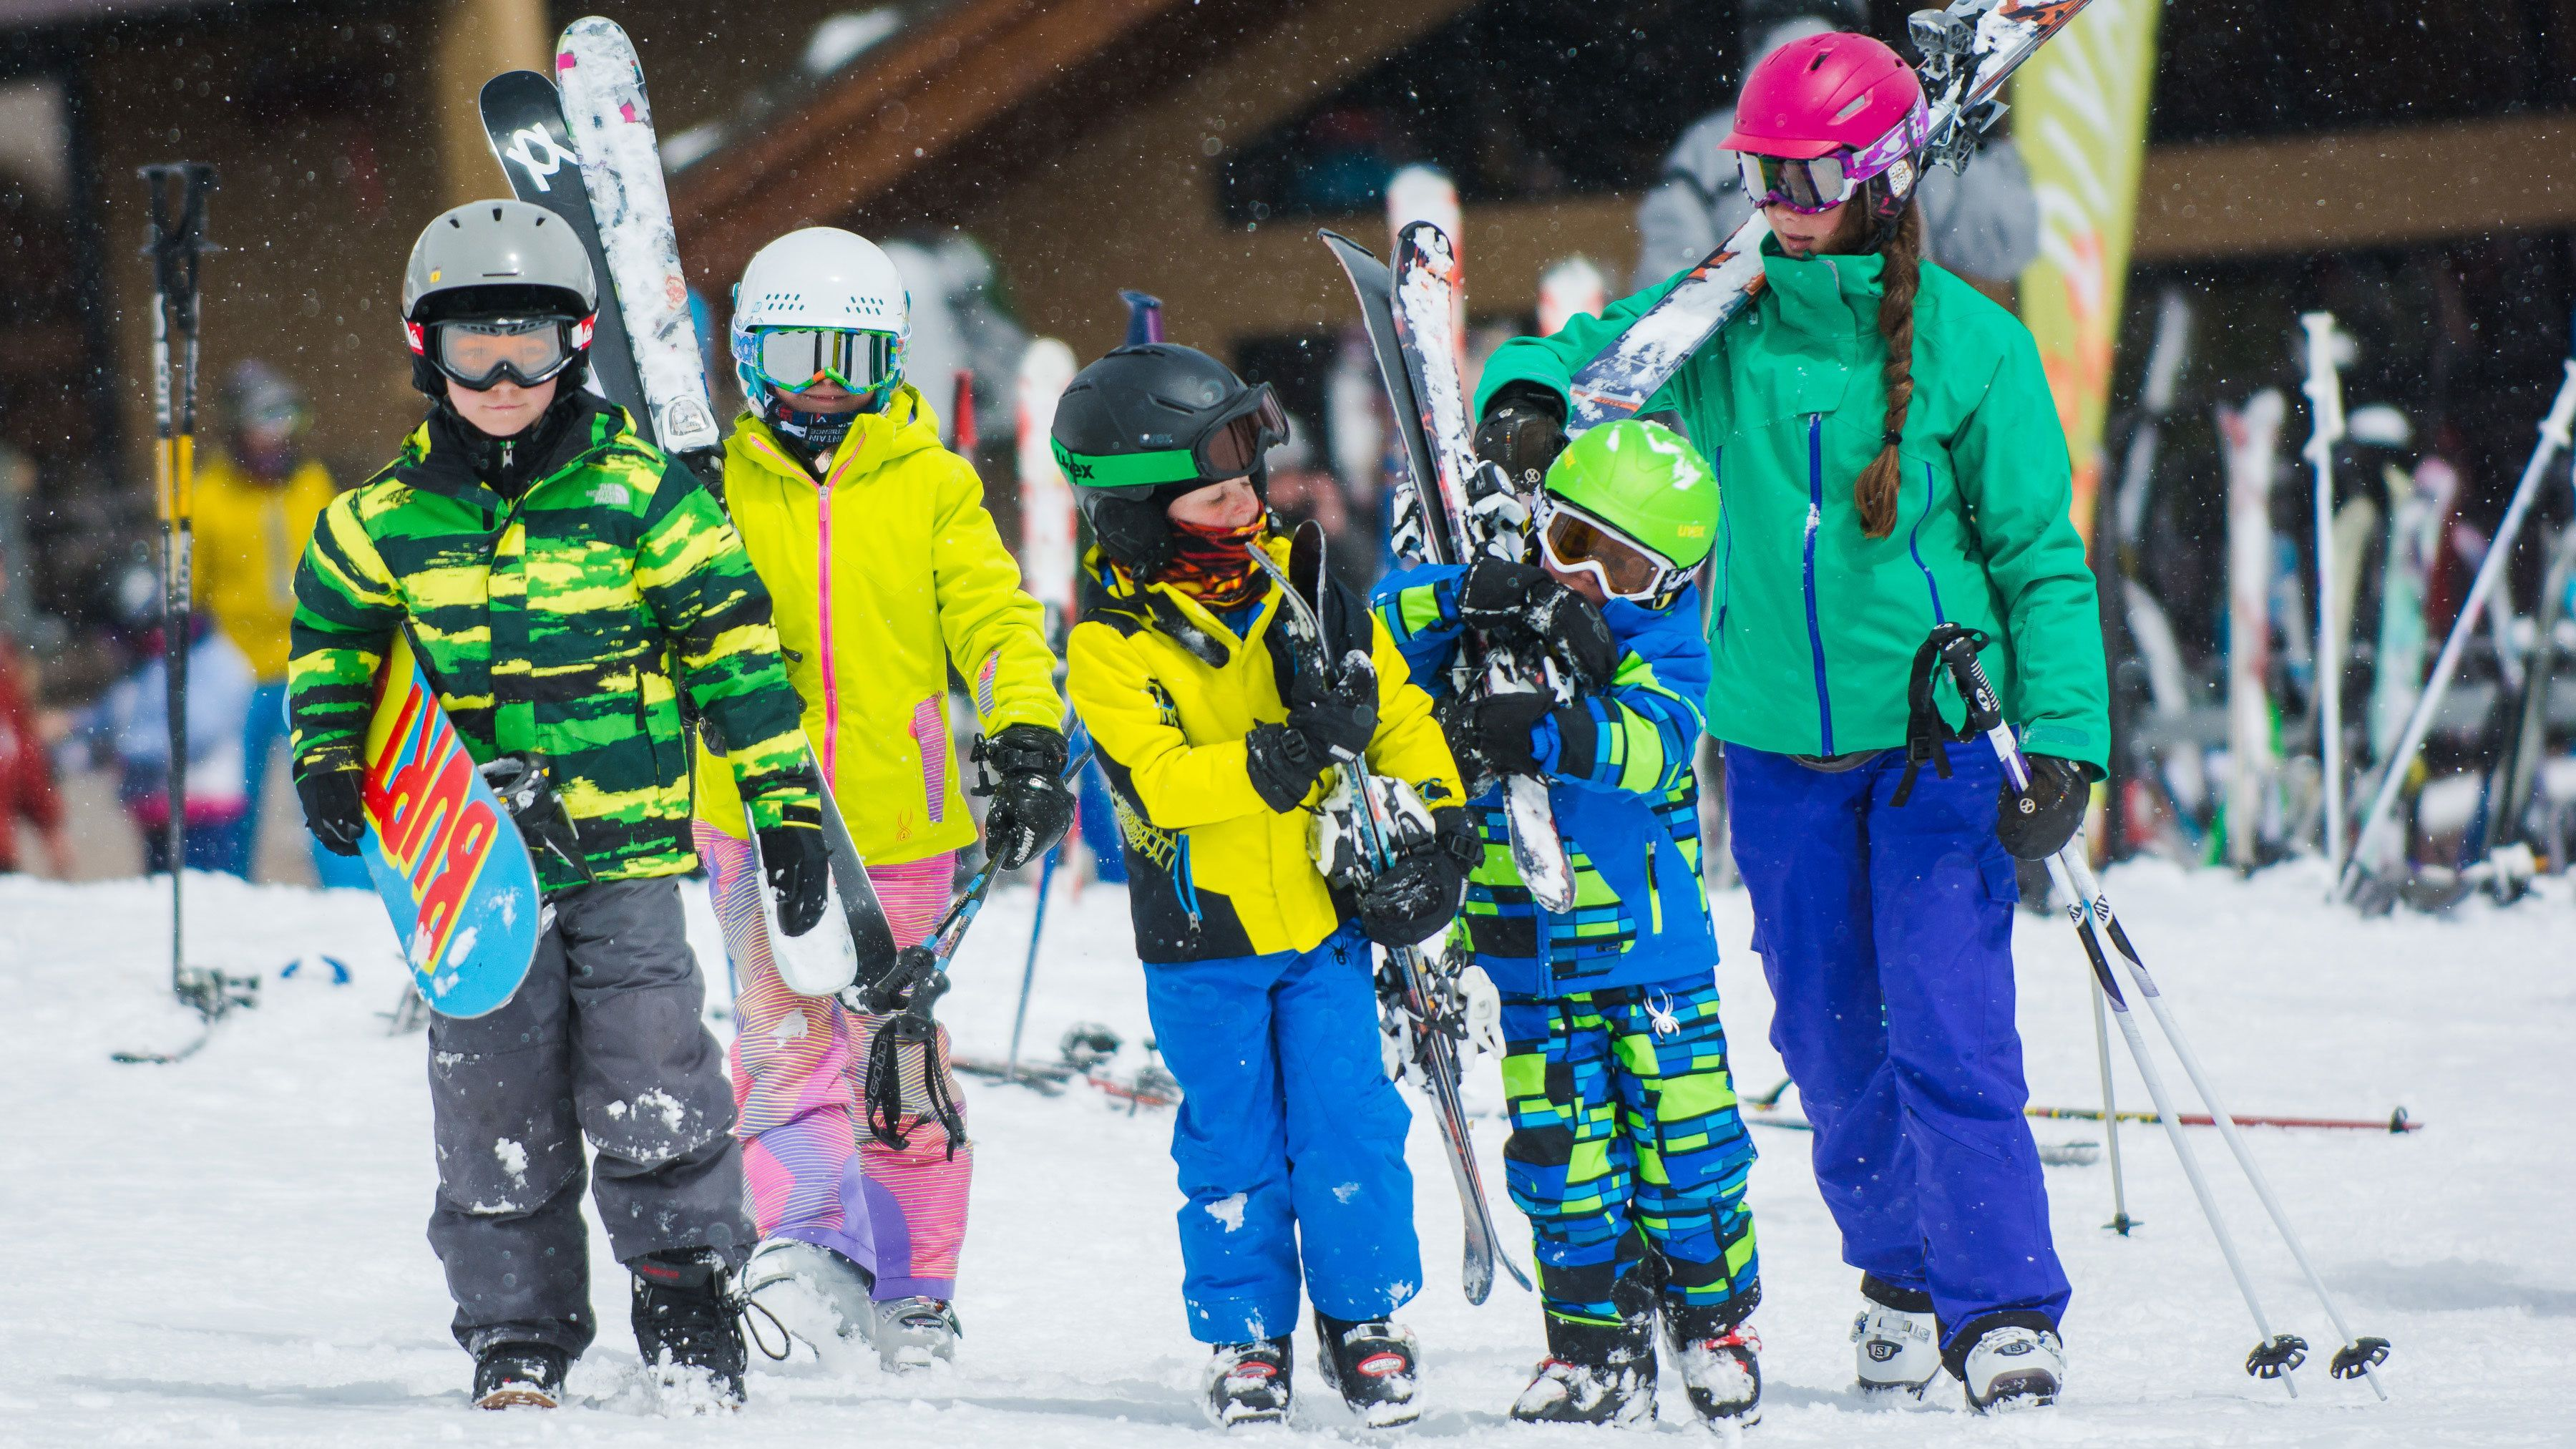 Group skiing in Colorado